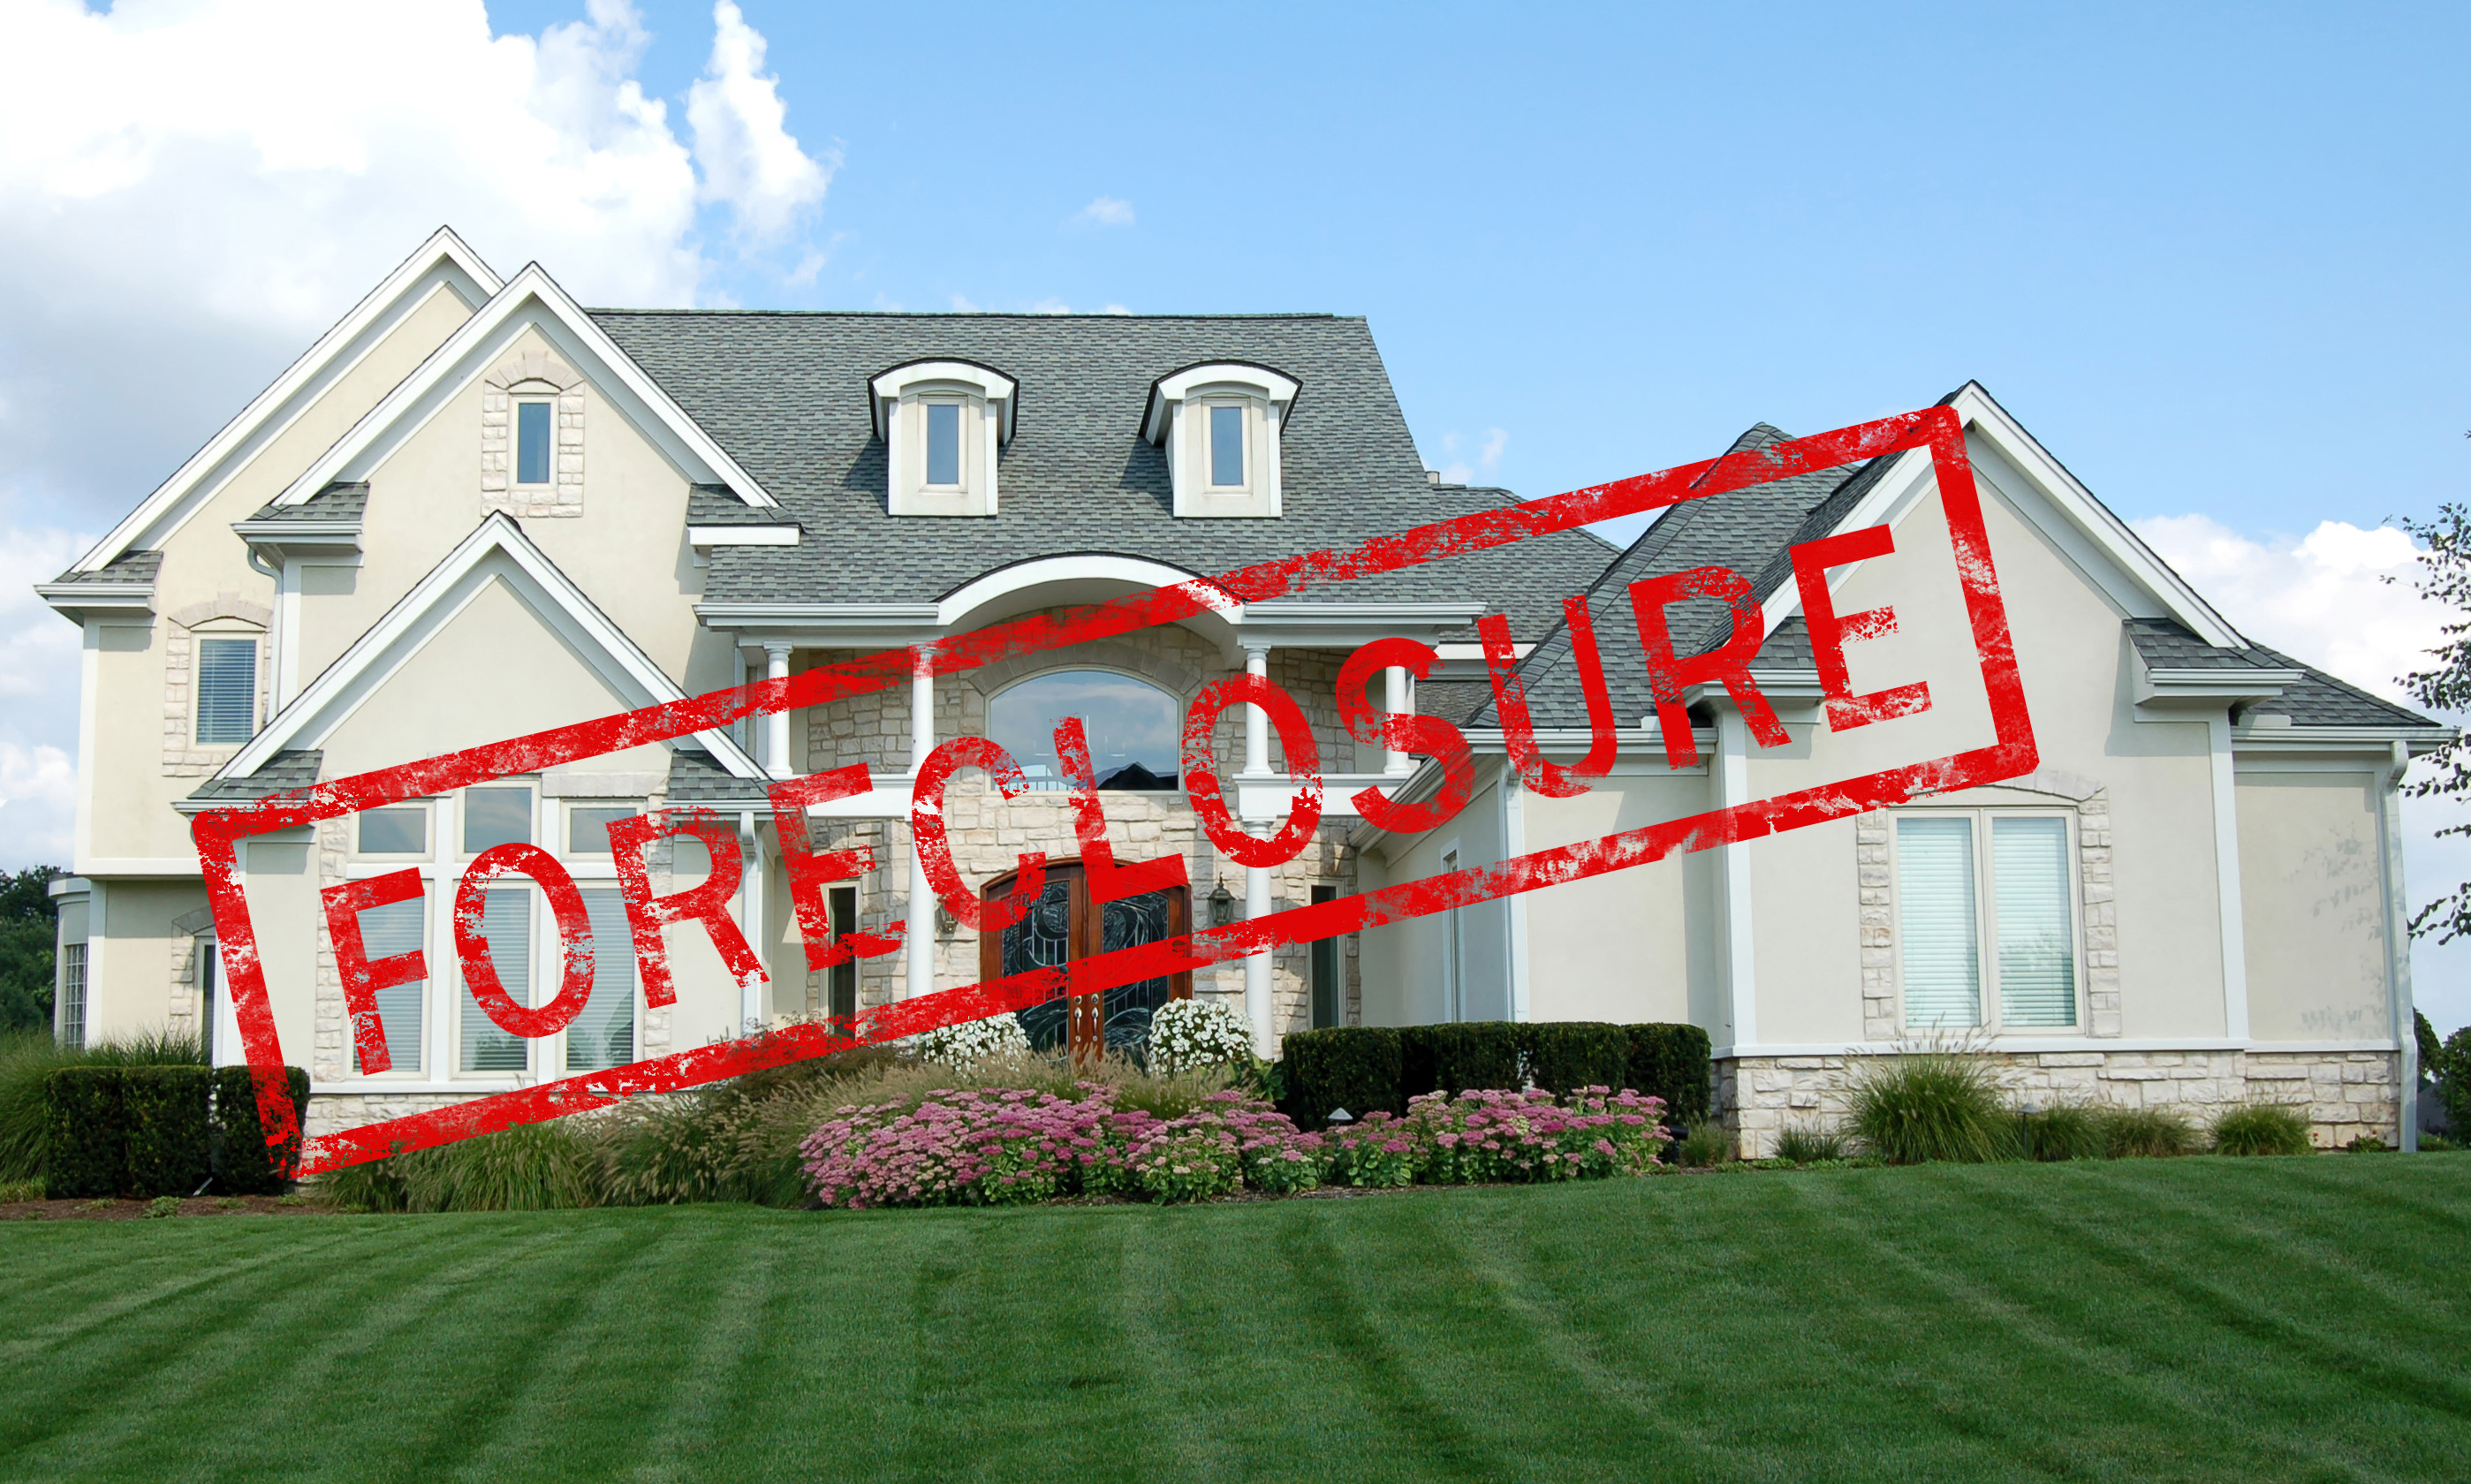 Call Shamrock Appraisals, Inc. to order valuations pertaining to Tuscaloosa foreclosures